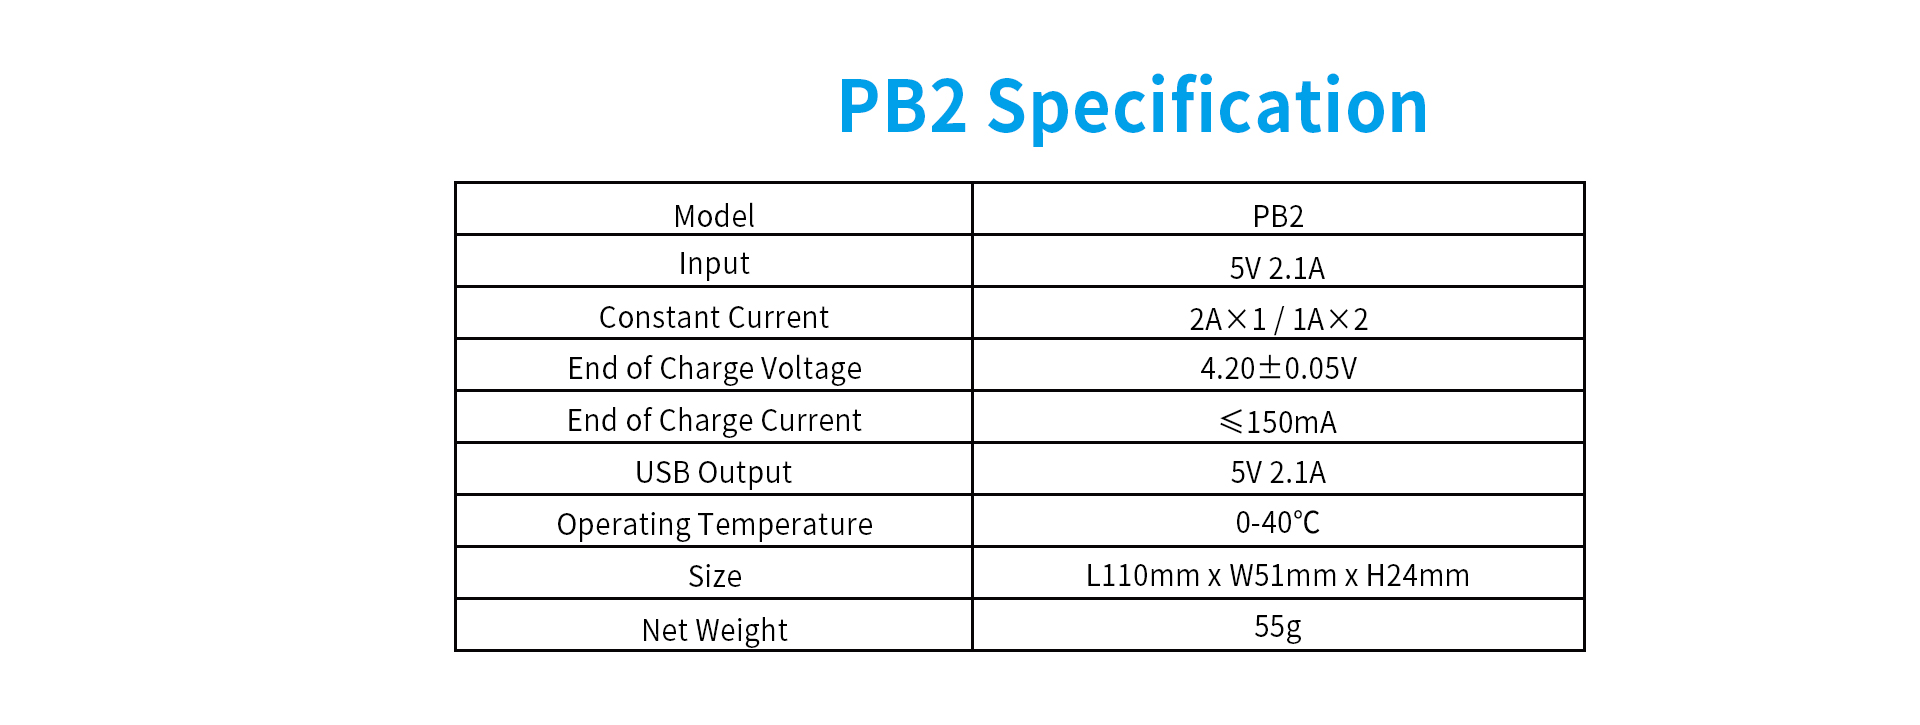 XTAR PB2 Powerbank Charger Specifications